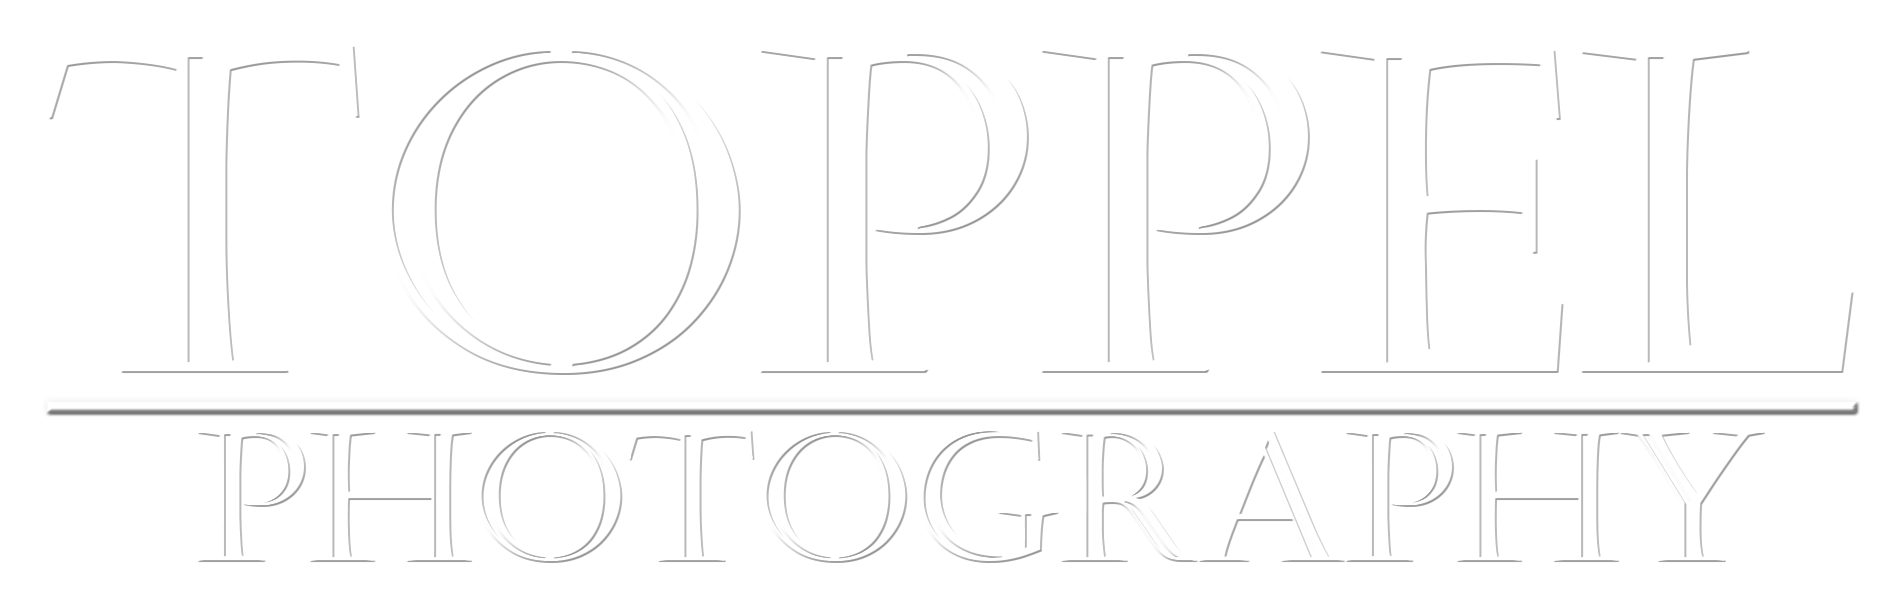 Toppel Photography: Exceptional photography for all of your special moments: Specializing in exceptional photography for every occasion: weddings, individual and family portraits, corporate/special events, community events.